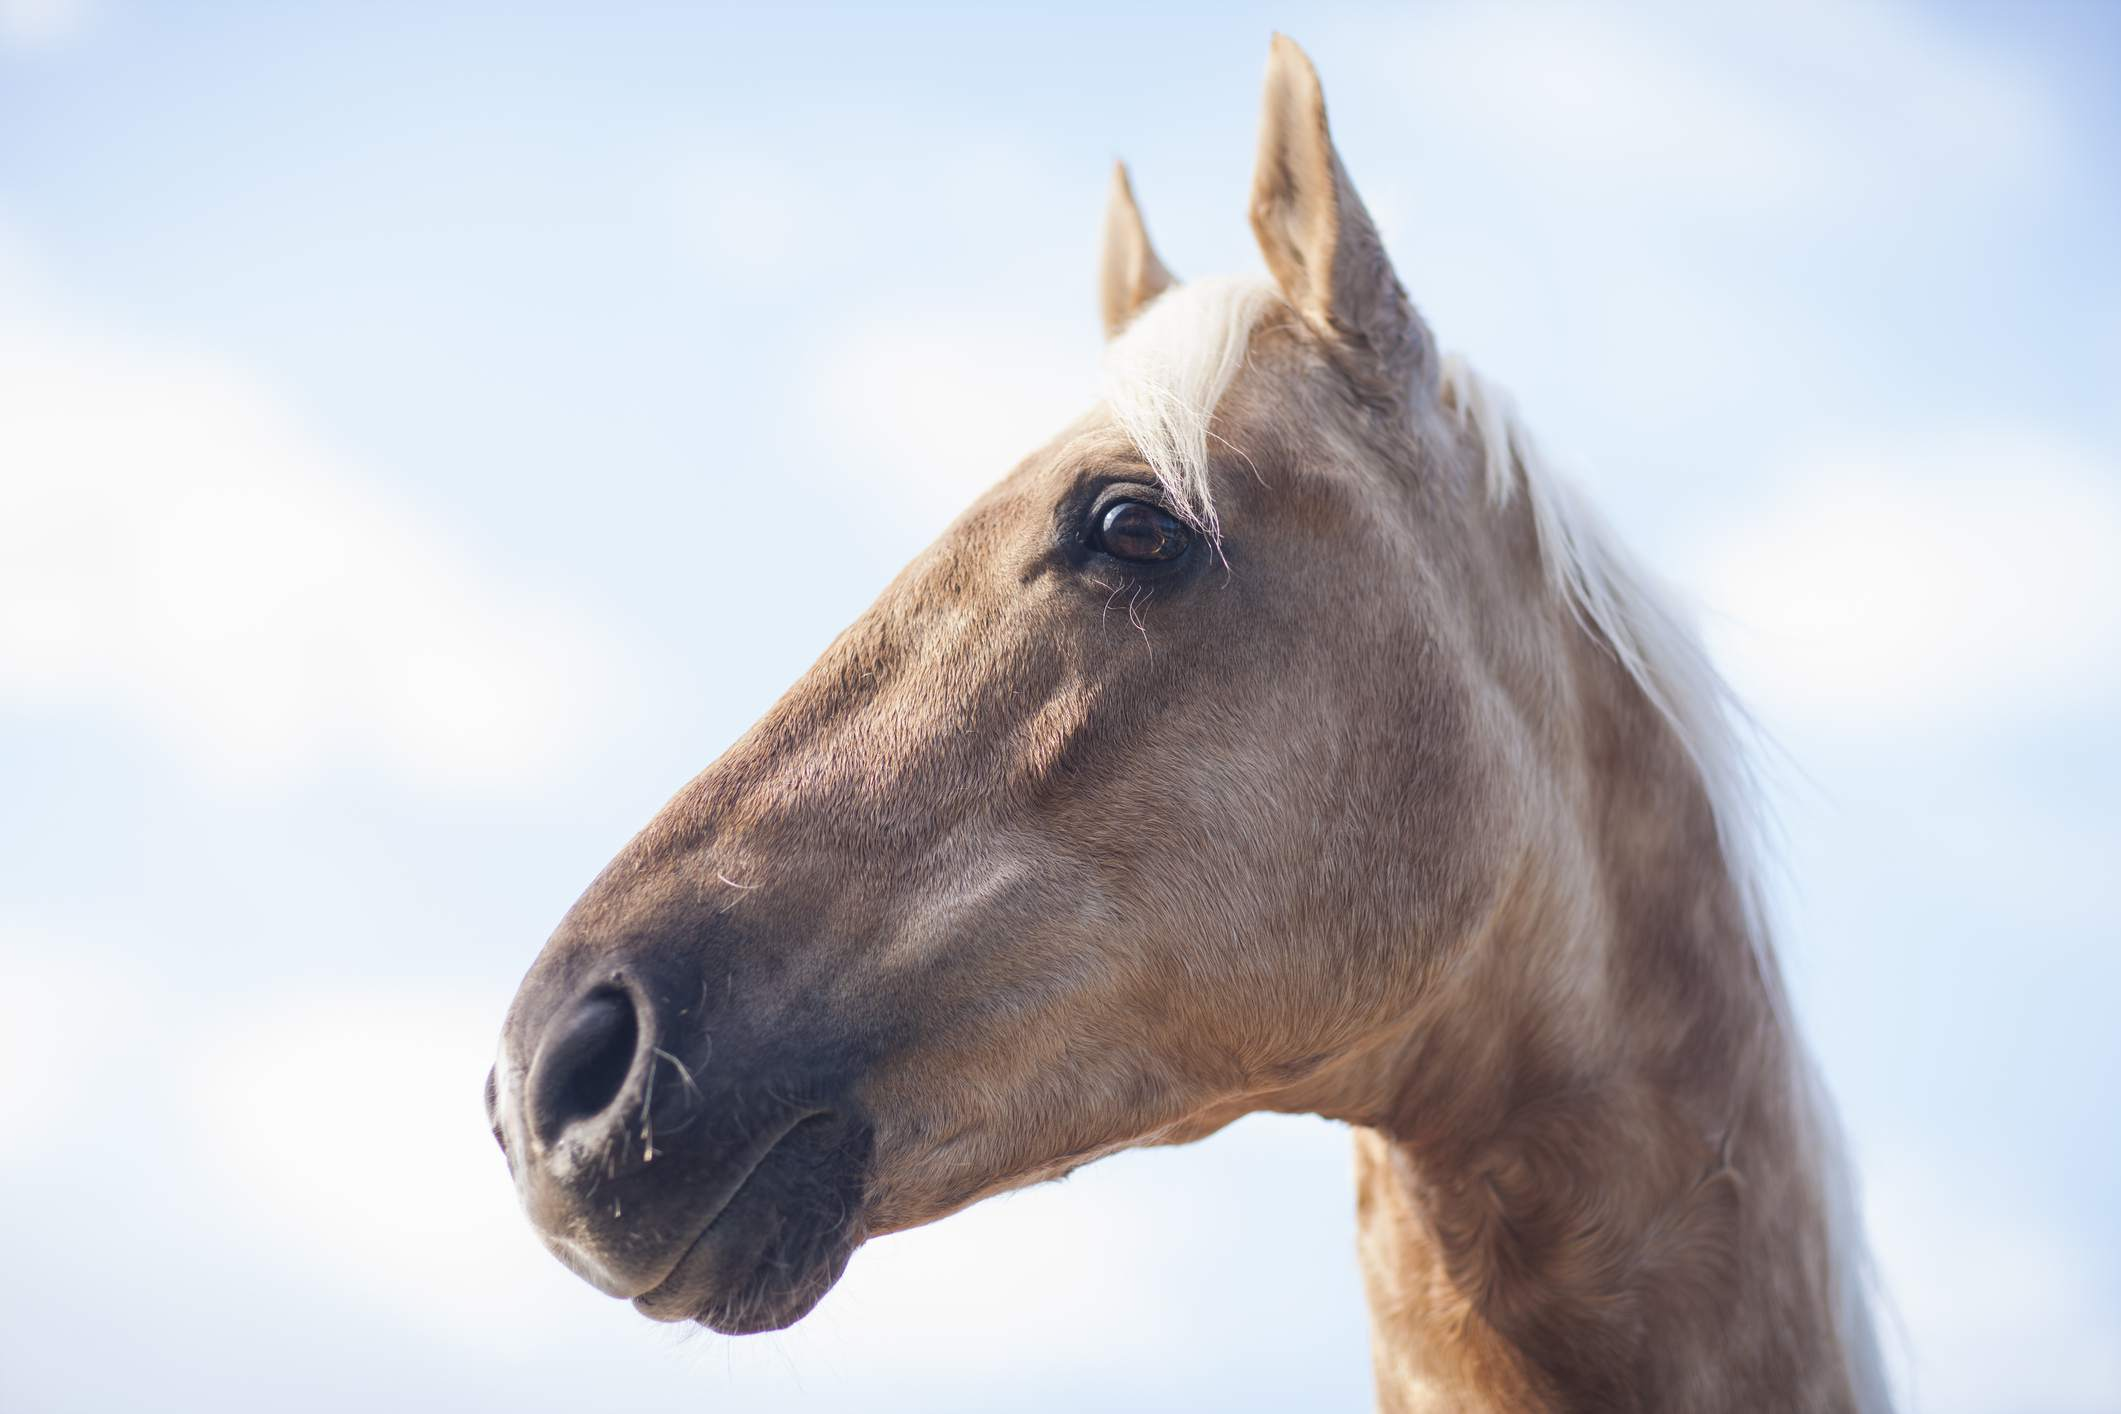 Horse looking left with the sky in the background.